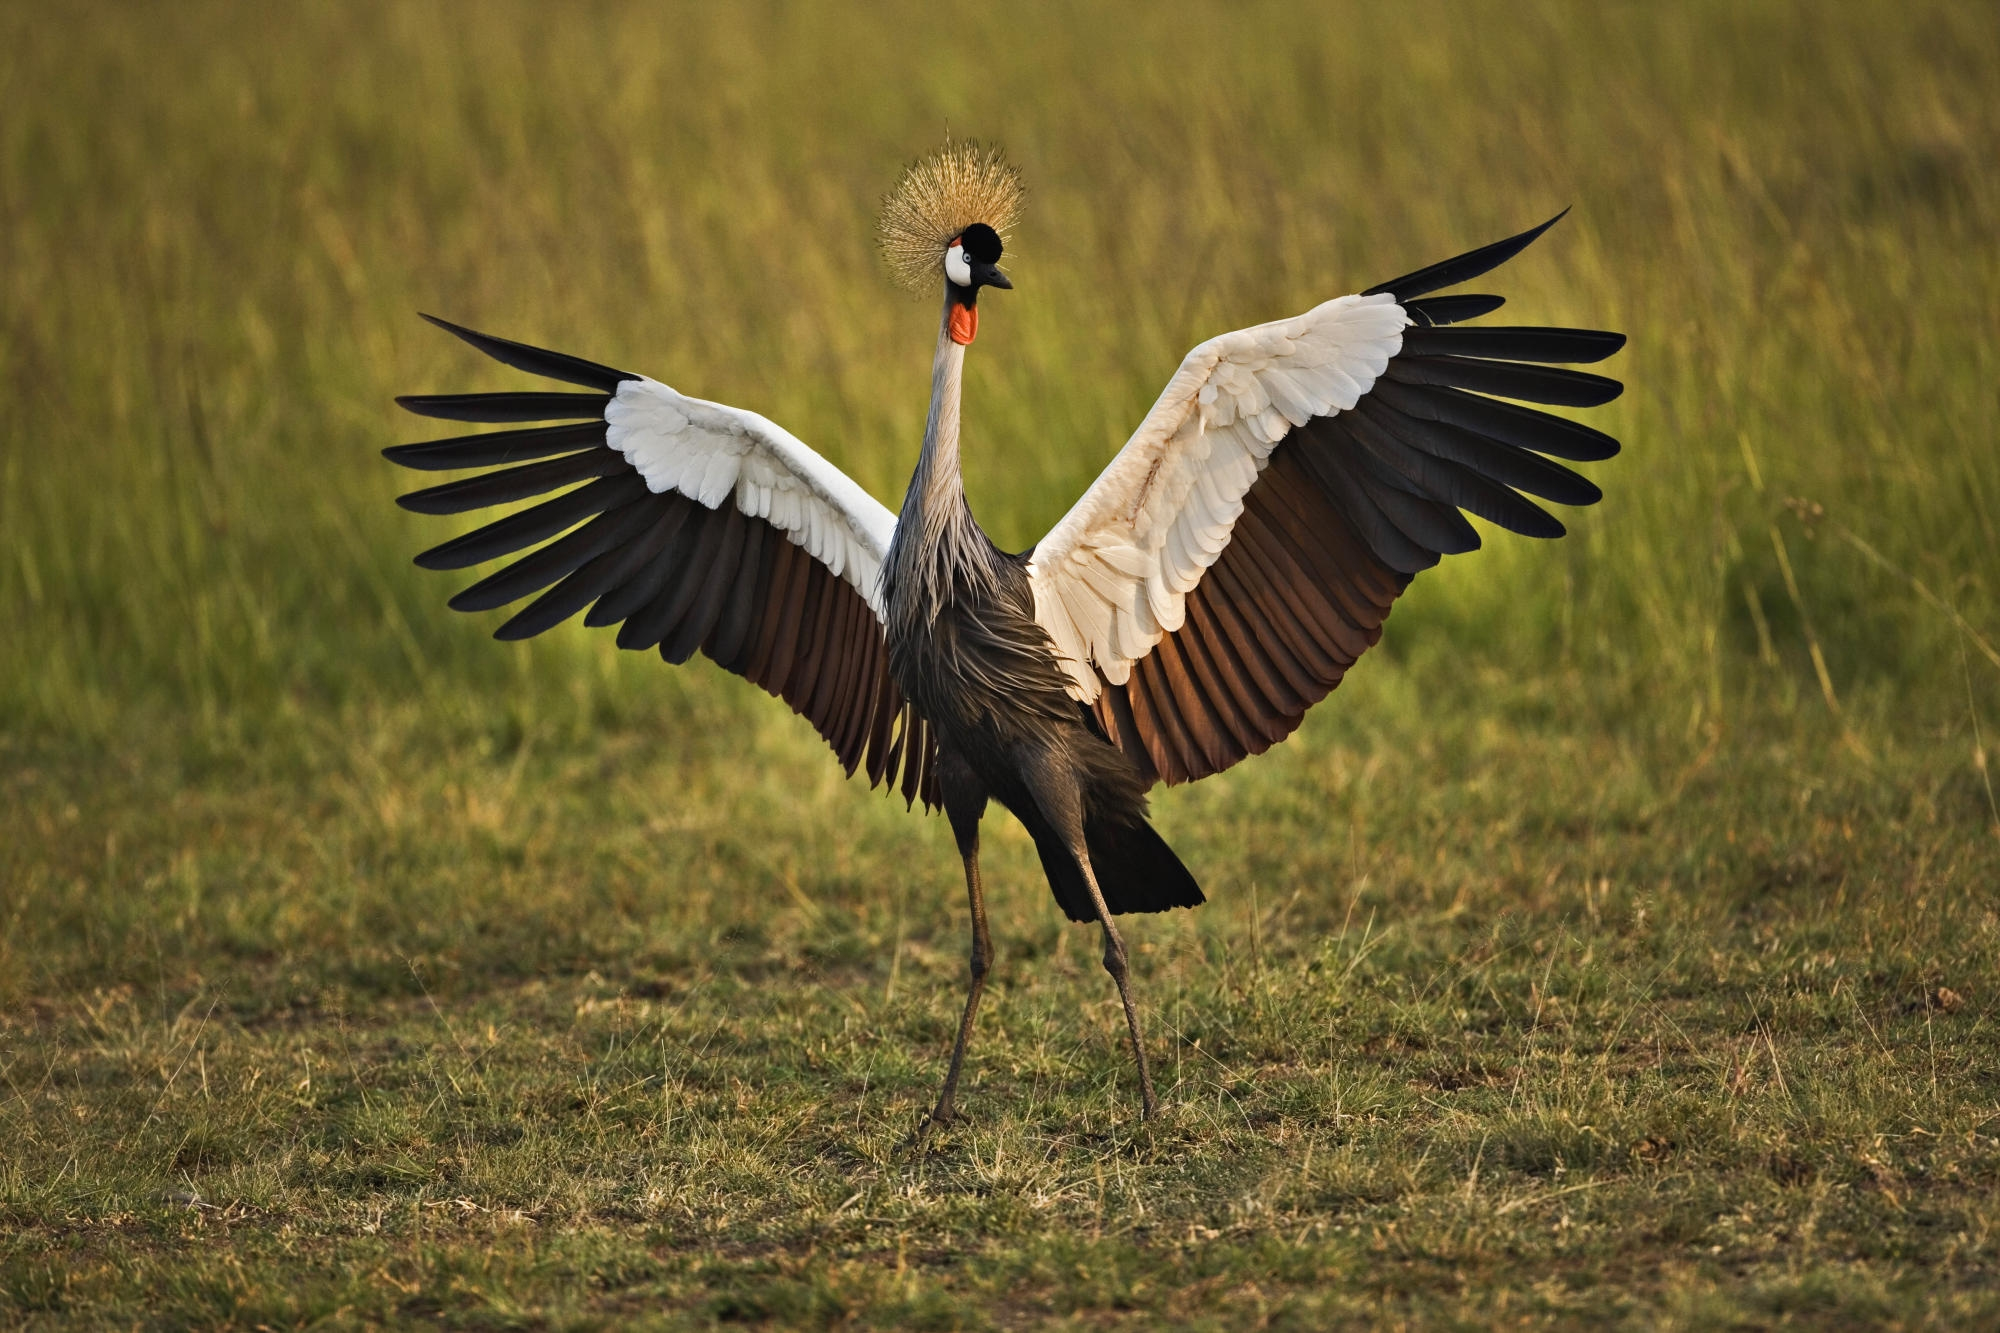 138986 download wallpaper Animals, Grass, Feather, Bird, Color, Crane screensavers and pictures for free